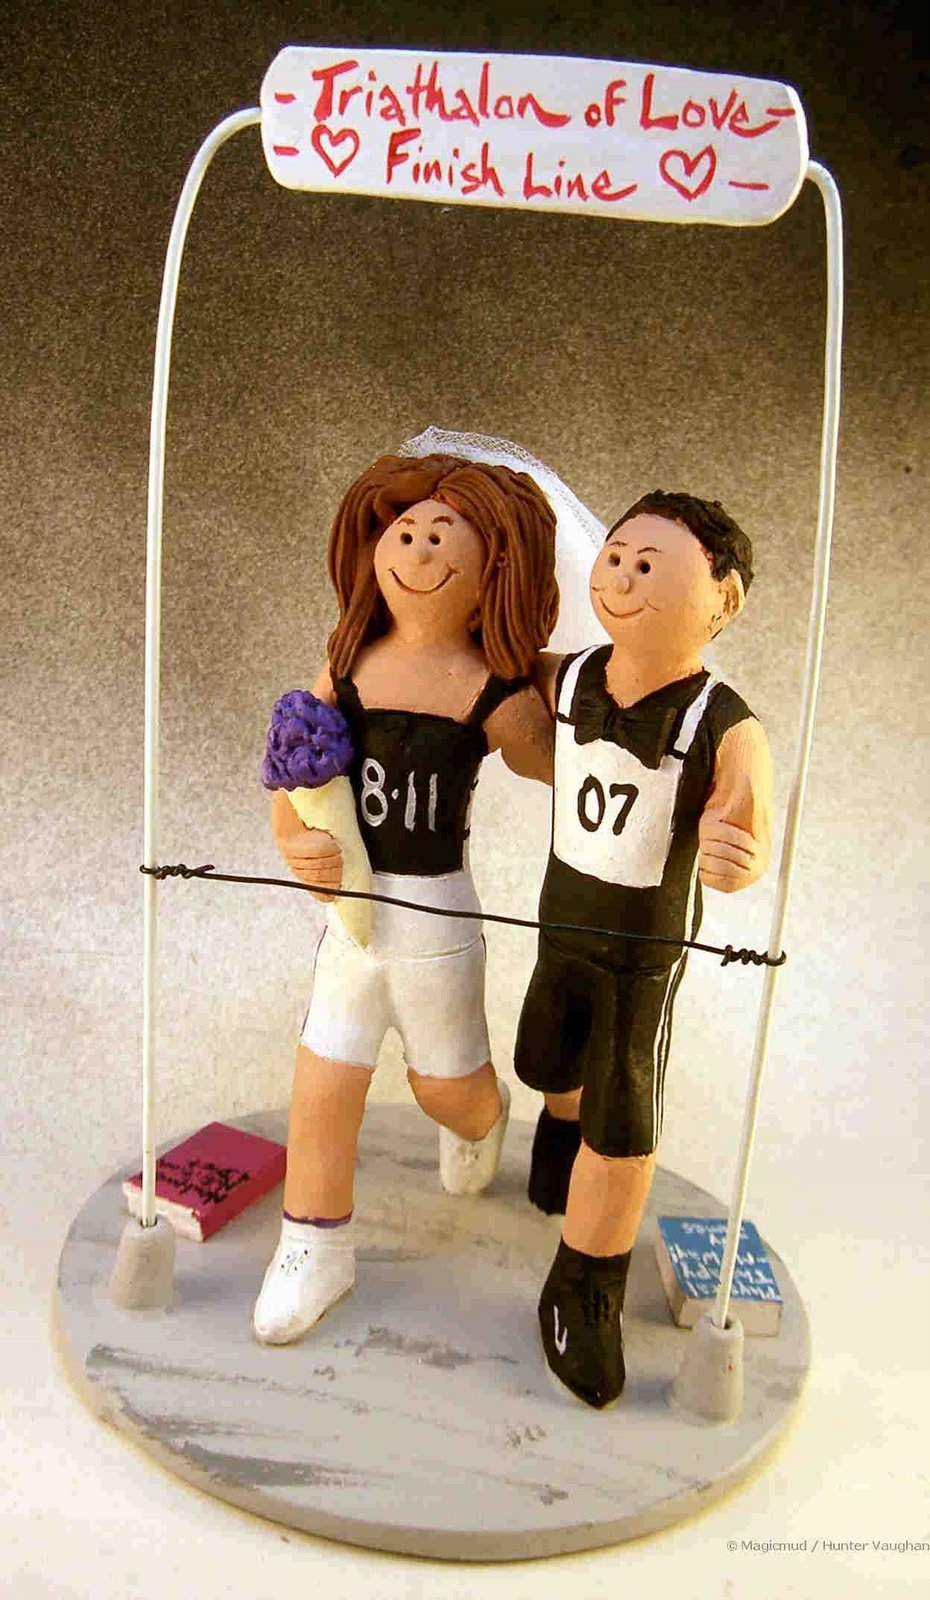 Custom Wedding Cake Toppers Wedding Cake Topper Of The DayJoggers Cake Topper